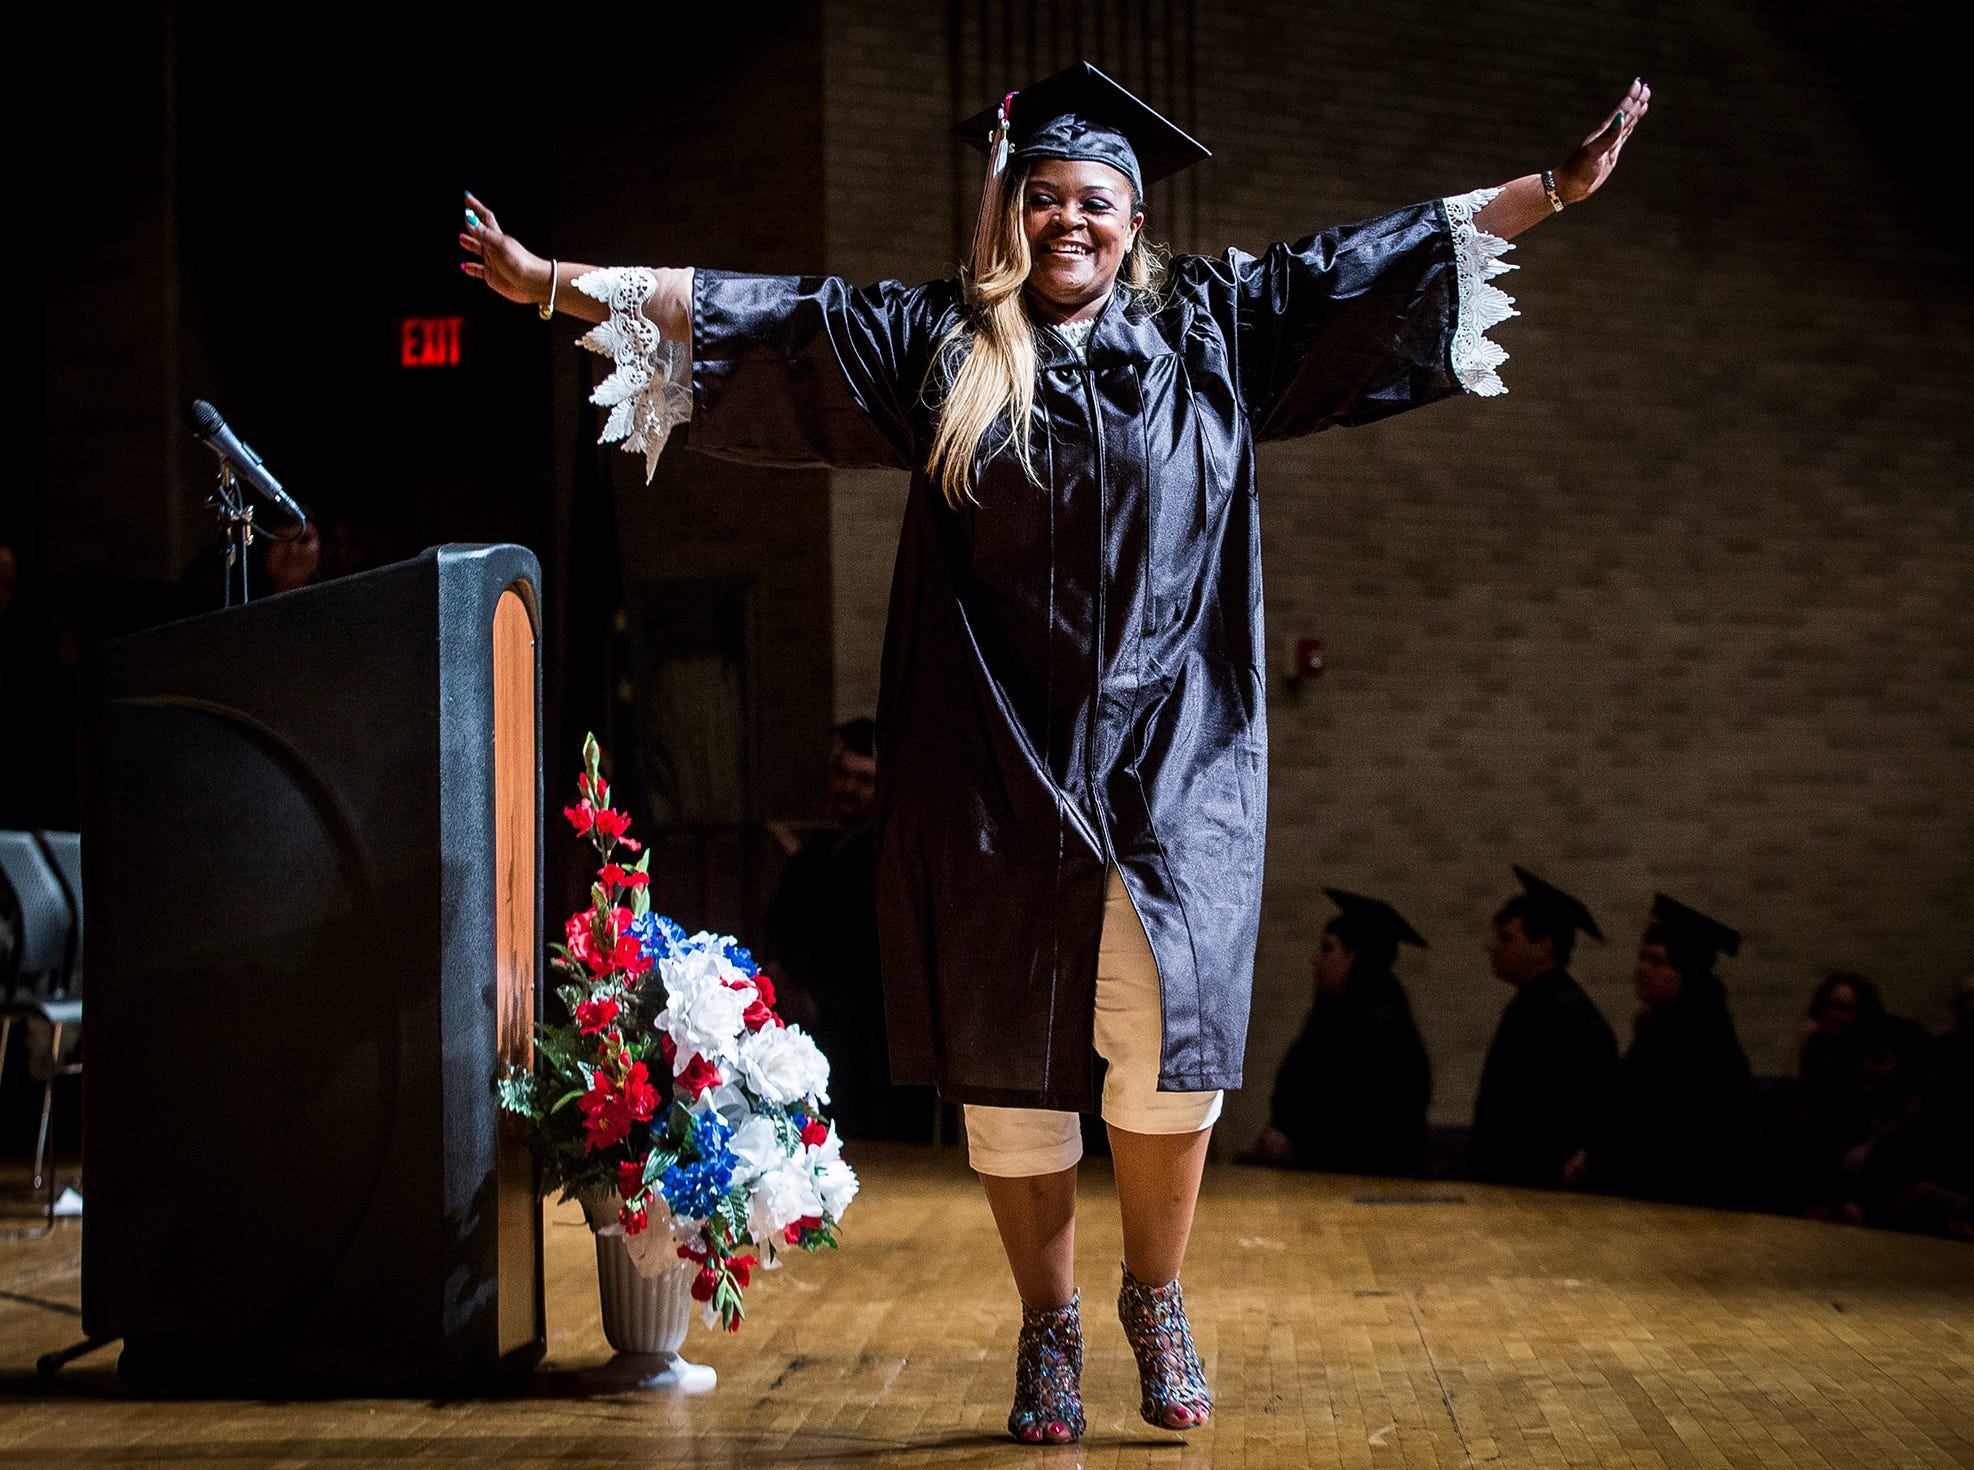 Angela Bennett celebrates while walking the stage to receive her high school diploma during the 2019 MCS Adult Education Program graduation ceremony at Central Thursday night.